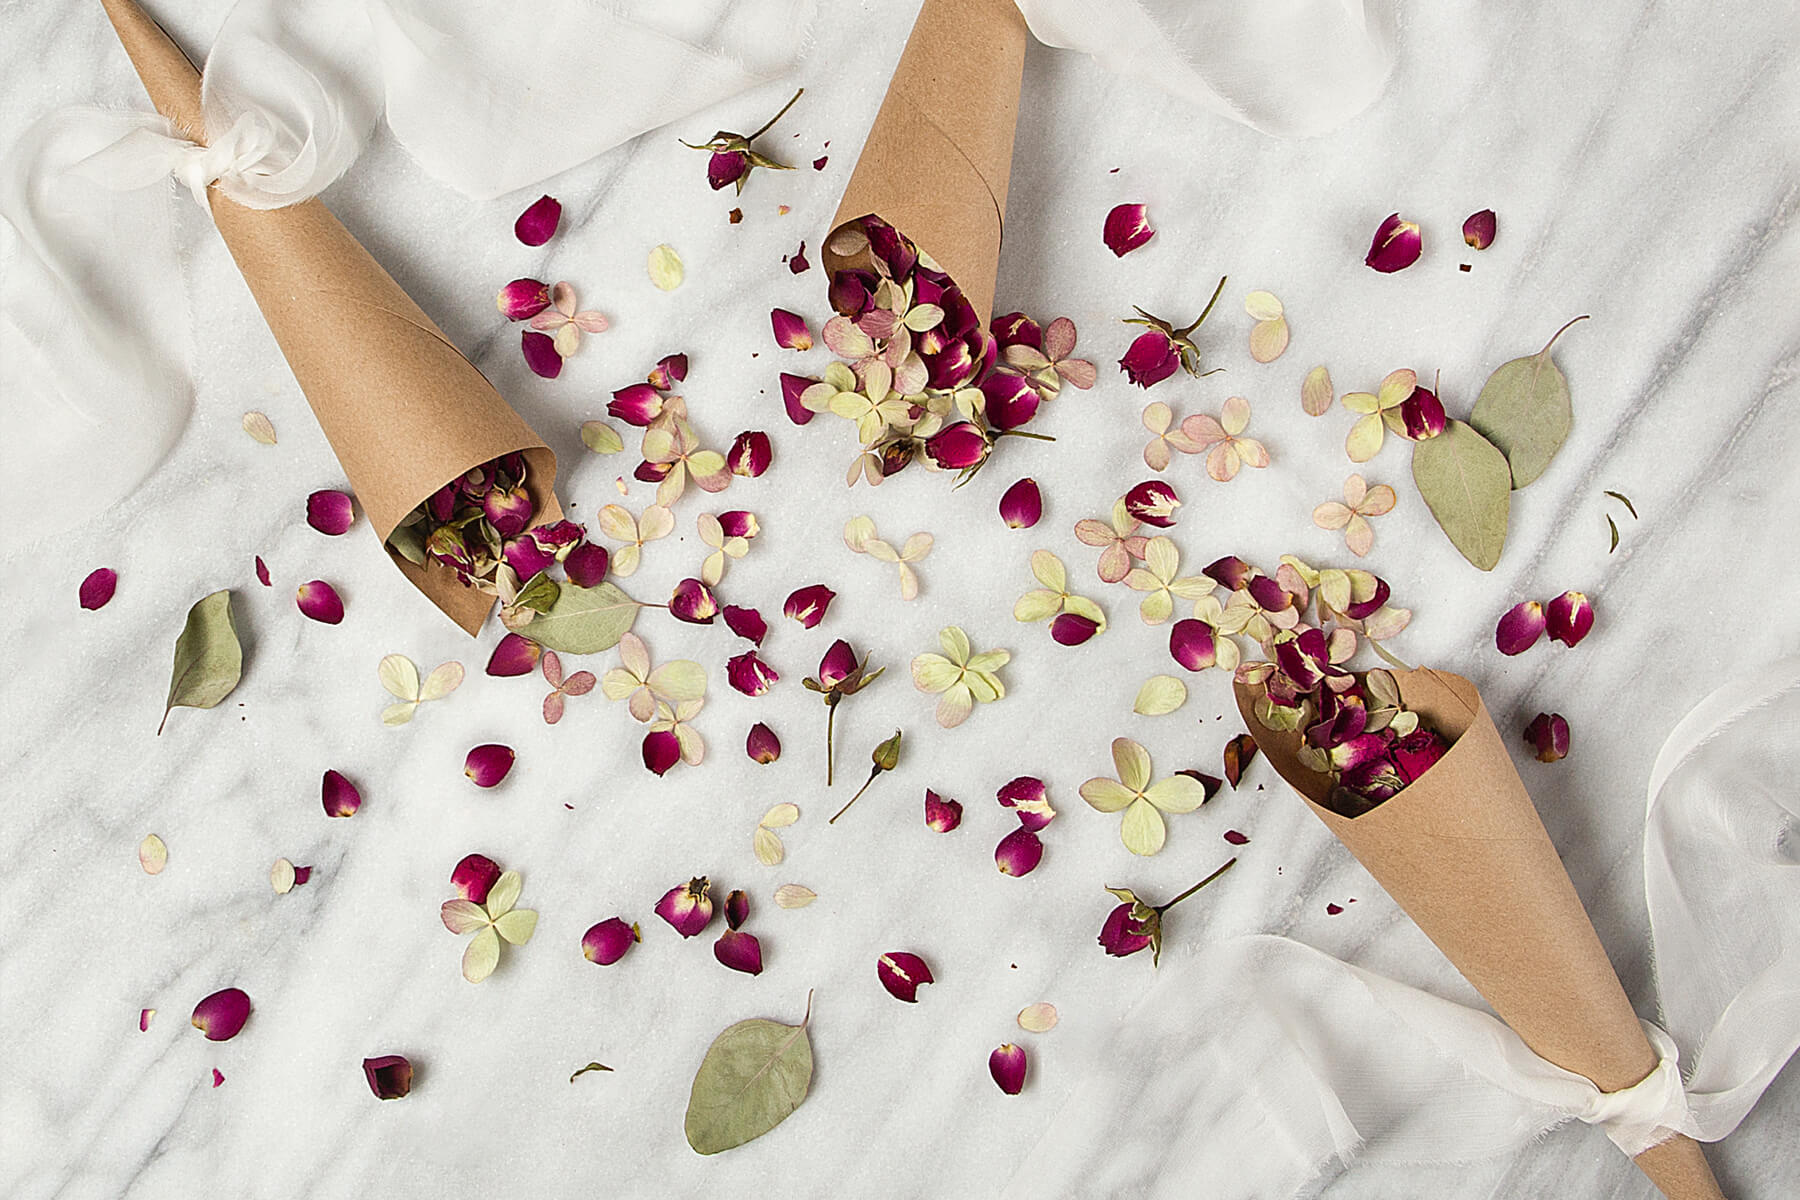 Floral confetti spread out on a white tablecloth.